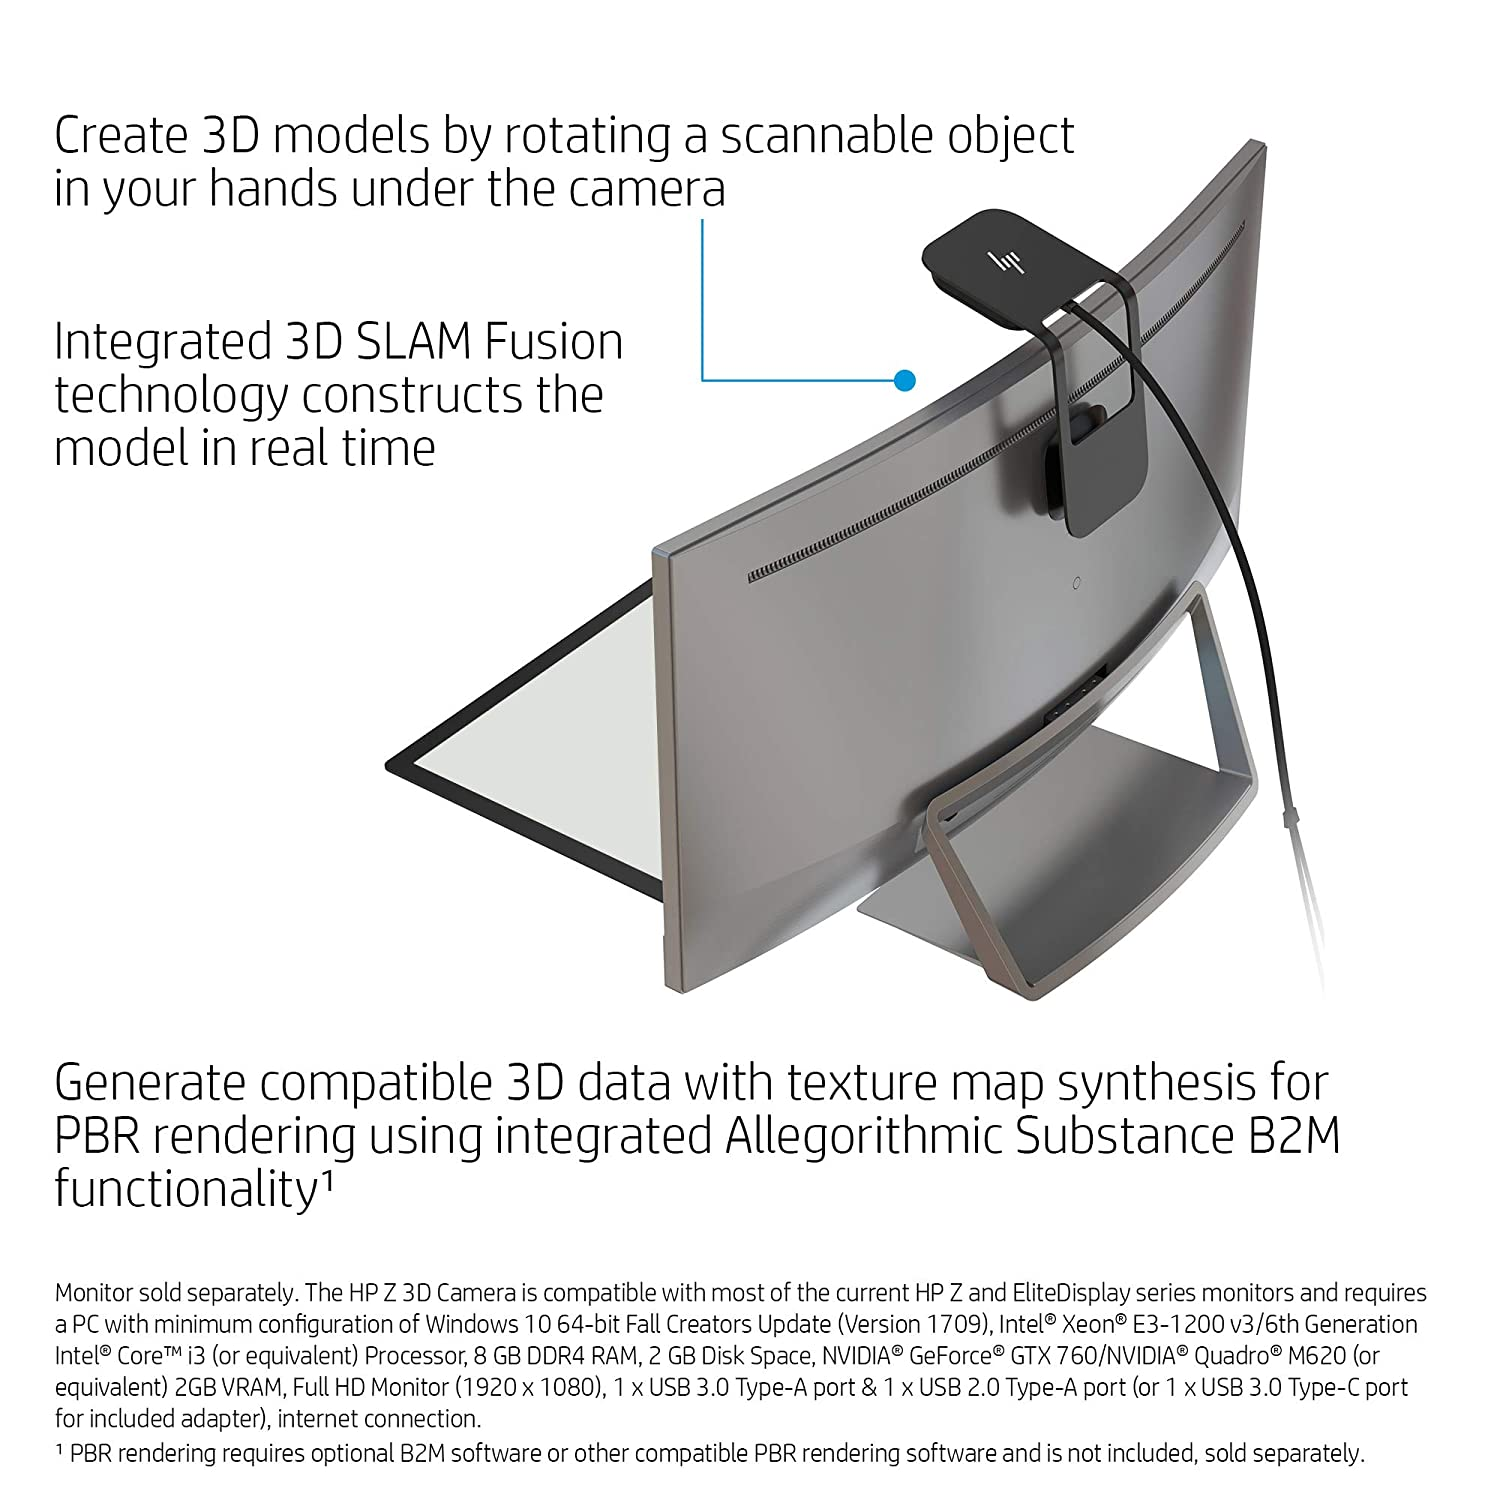 c212a93e16 Amazon.com  HP Z 3D Camera with SLAM Fusion Scanning